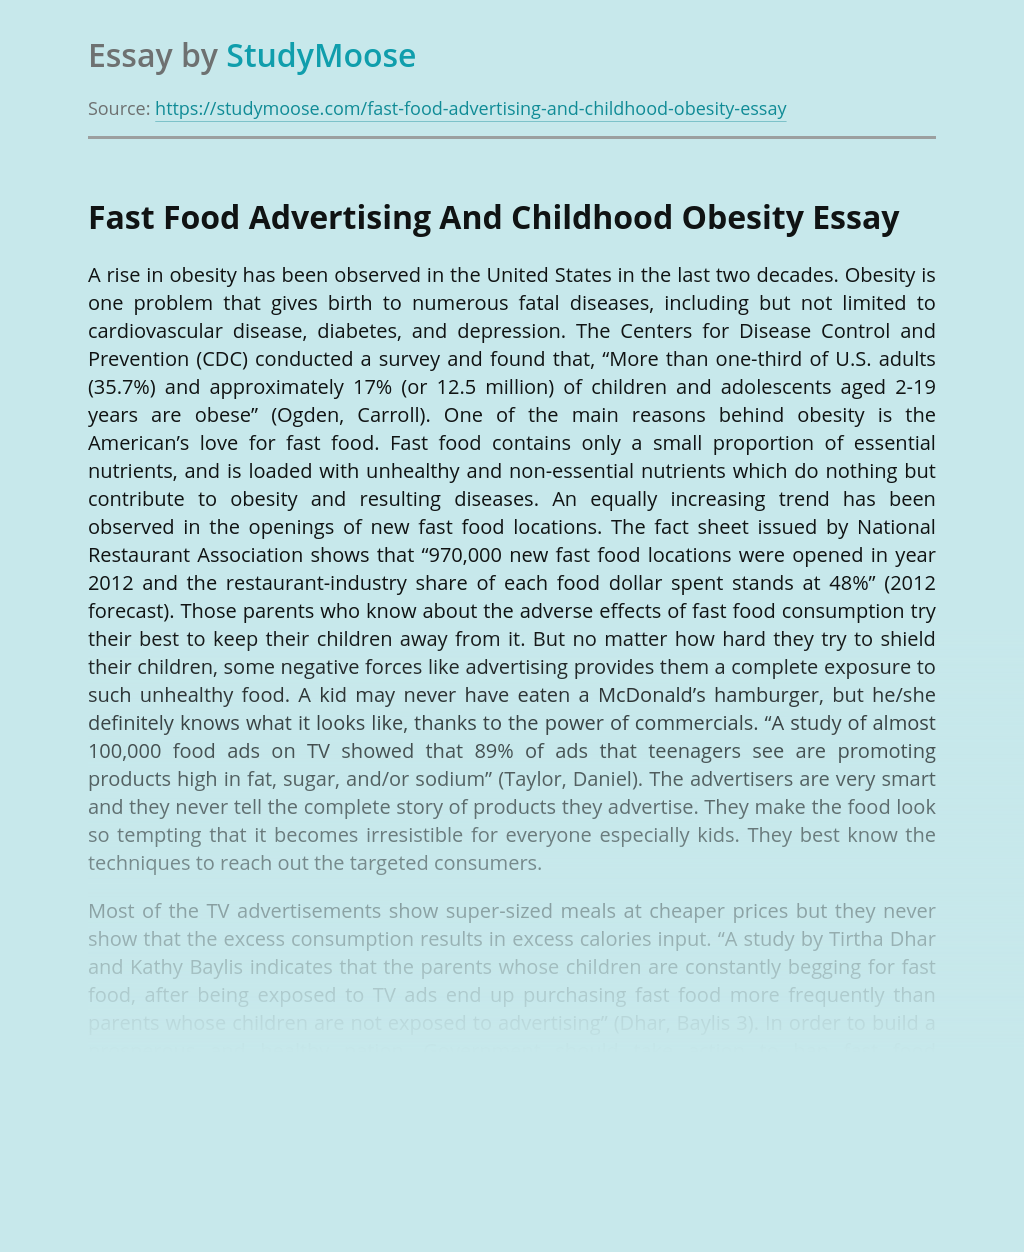 Fast Food Advertising And Childhood Obesity